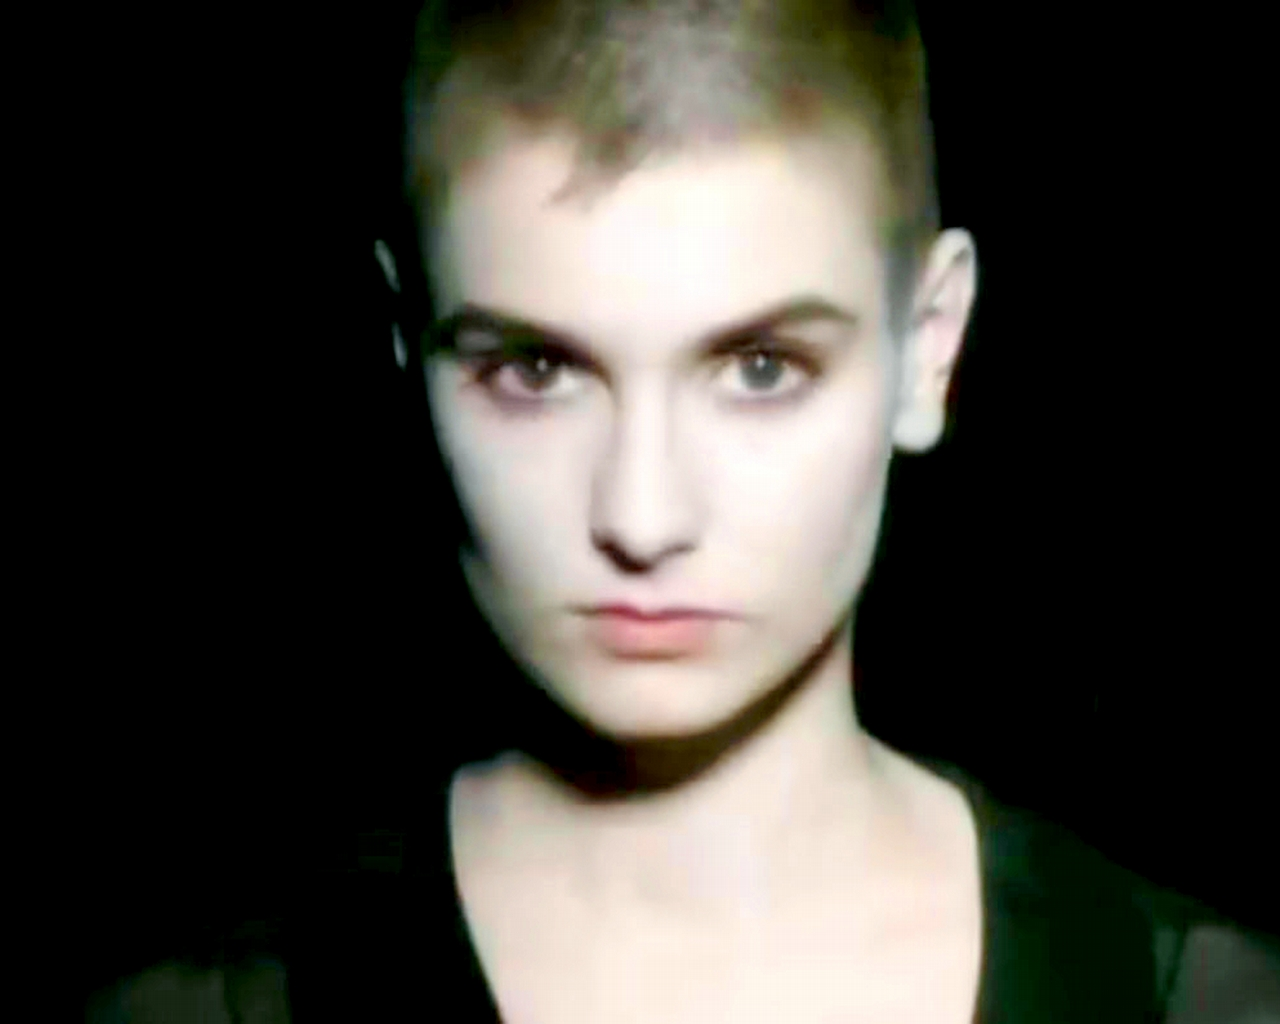 """Nothing Compares 2 U"" by SINEAD O'CONNOR LYRICS"